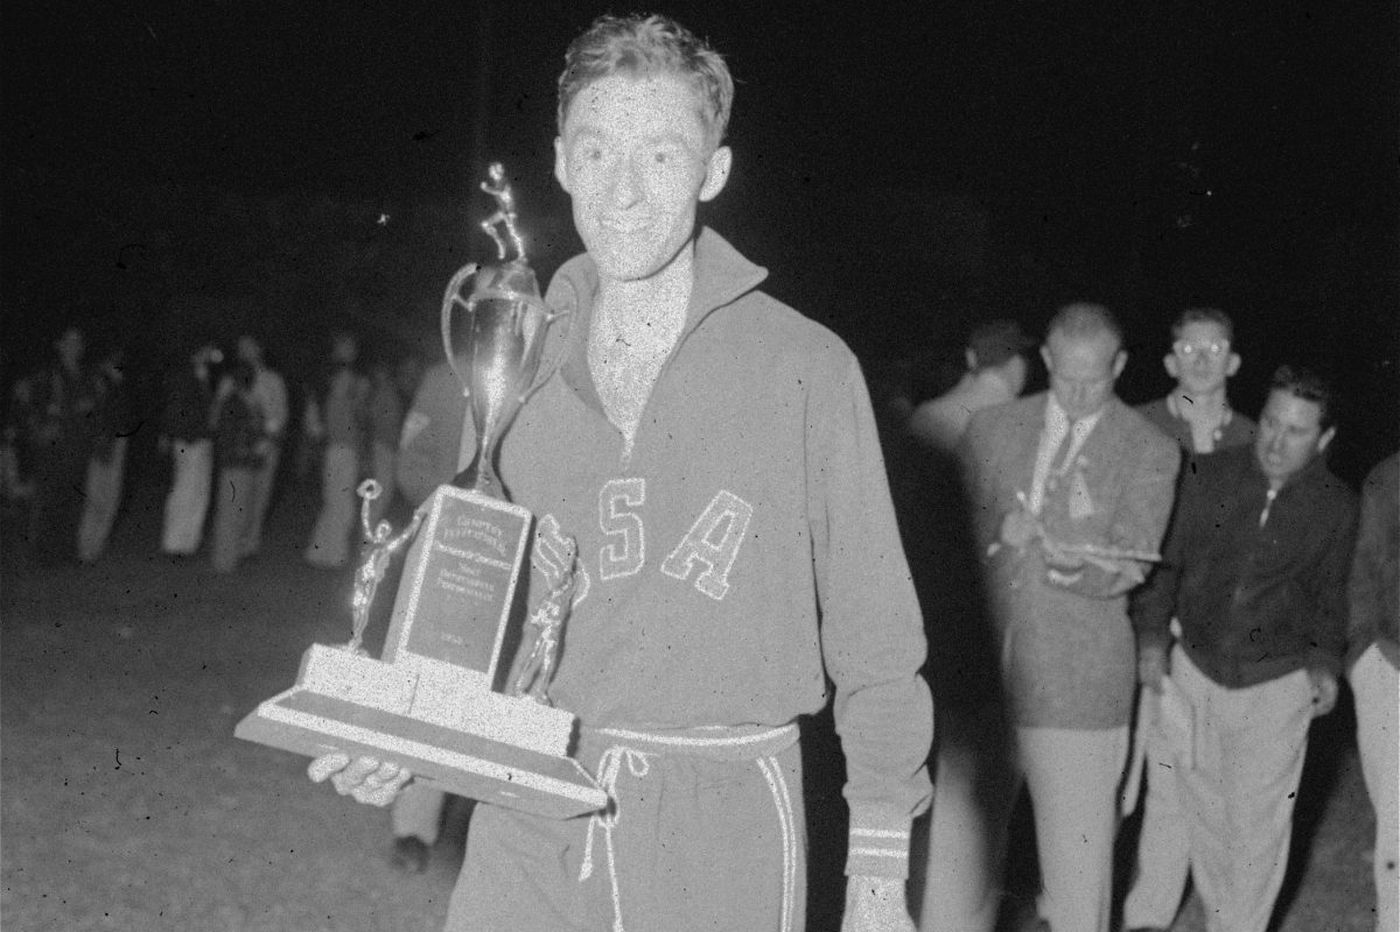 Horace Ashenfelter III, Olympic track and field gold medalist, dies at 94